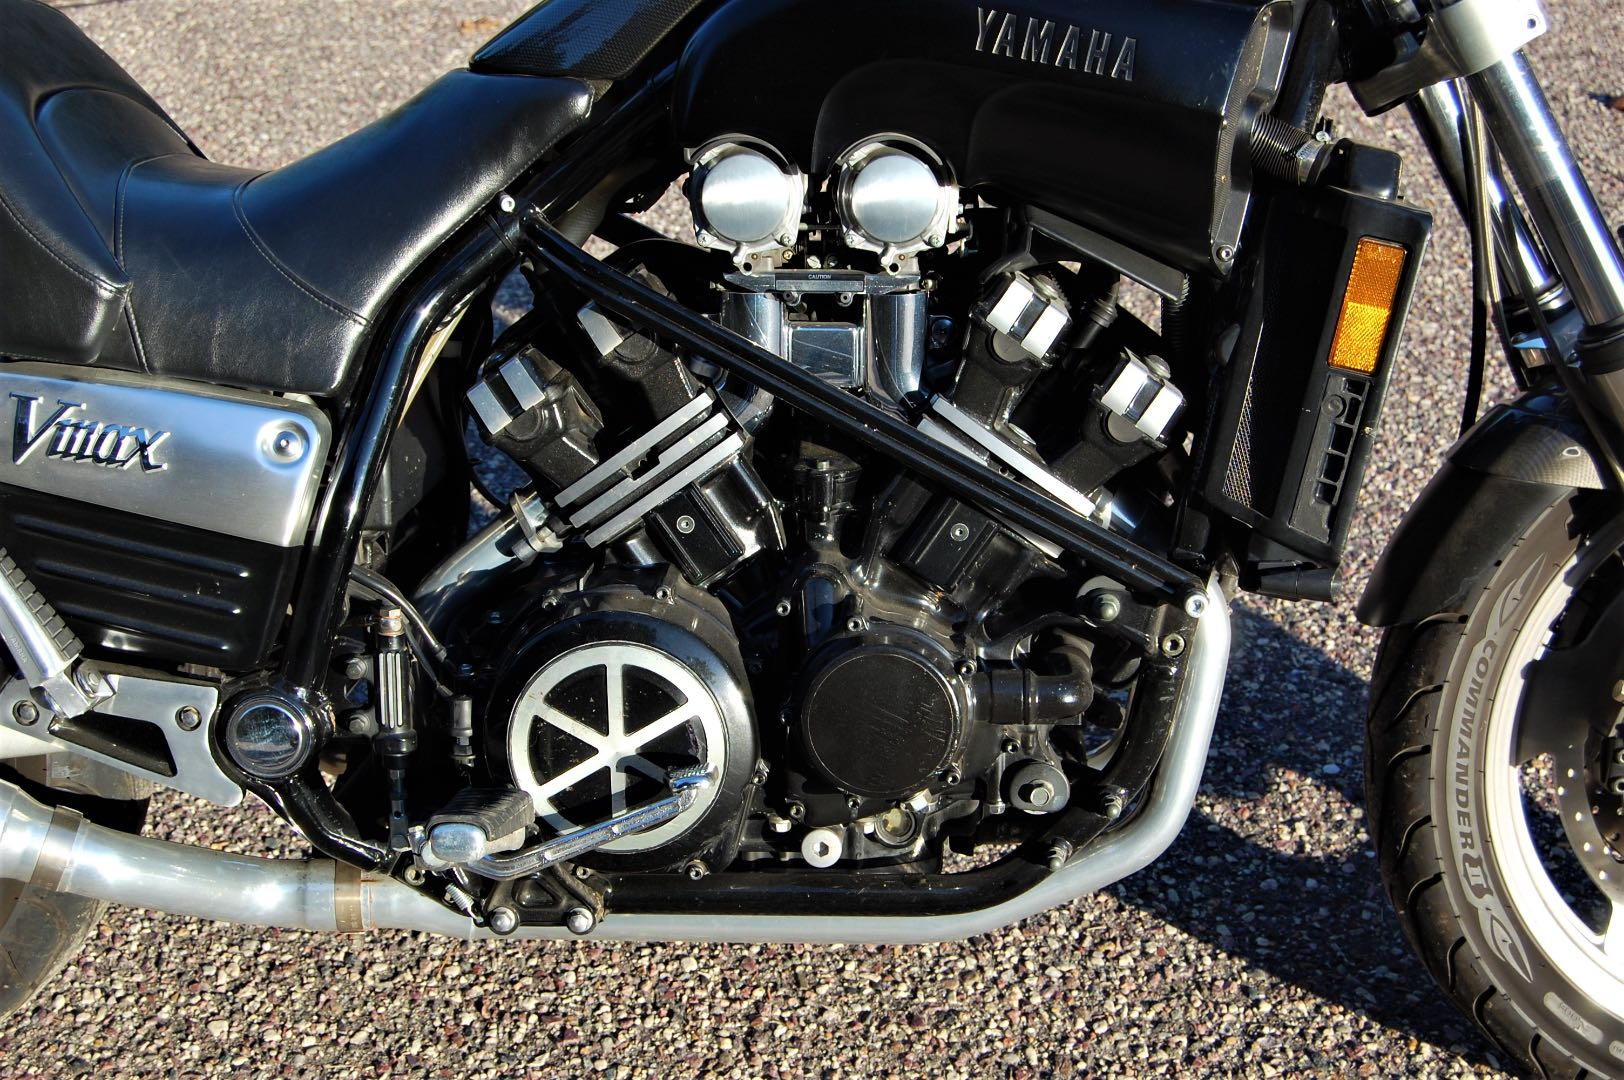 The Vmax engine is pure industrial art. With the engine's mass carried low in the frame and the four-gallon gas tank under the seat, the VMax achieves a lower center of gravity than the Sabre has—and the effect is noticeable in handling. The black twin bar across the engine is one of the Morley frame stiffeners.